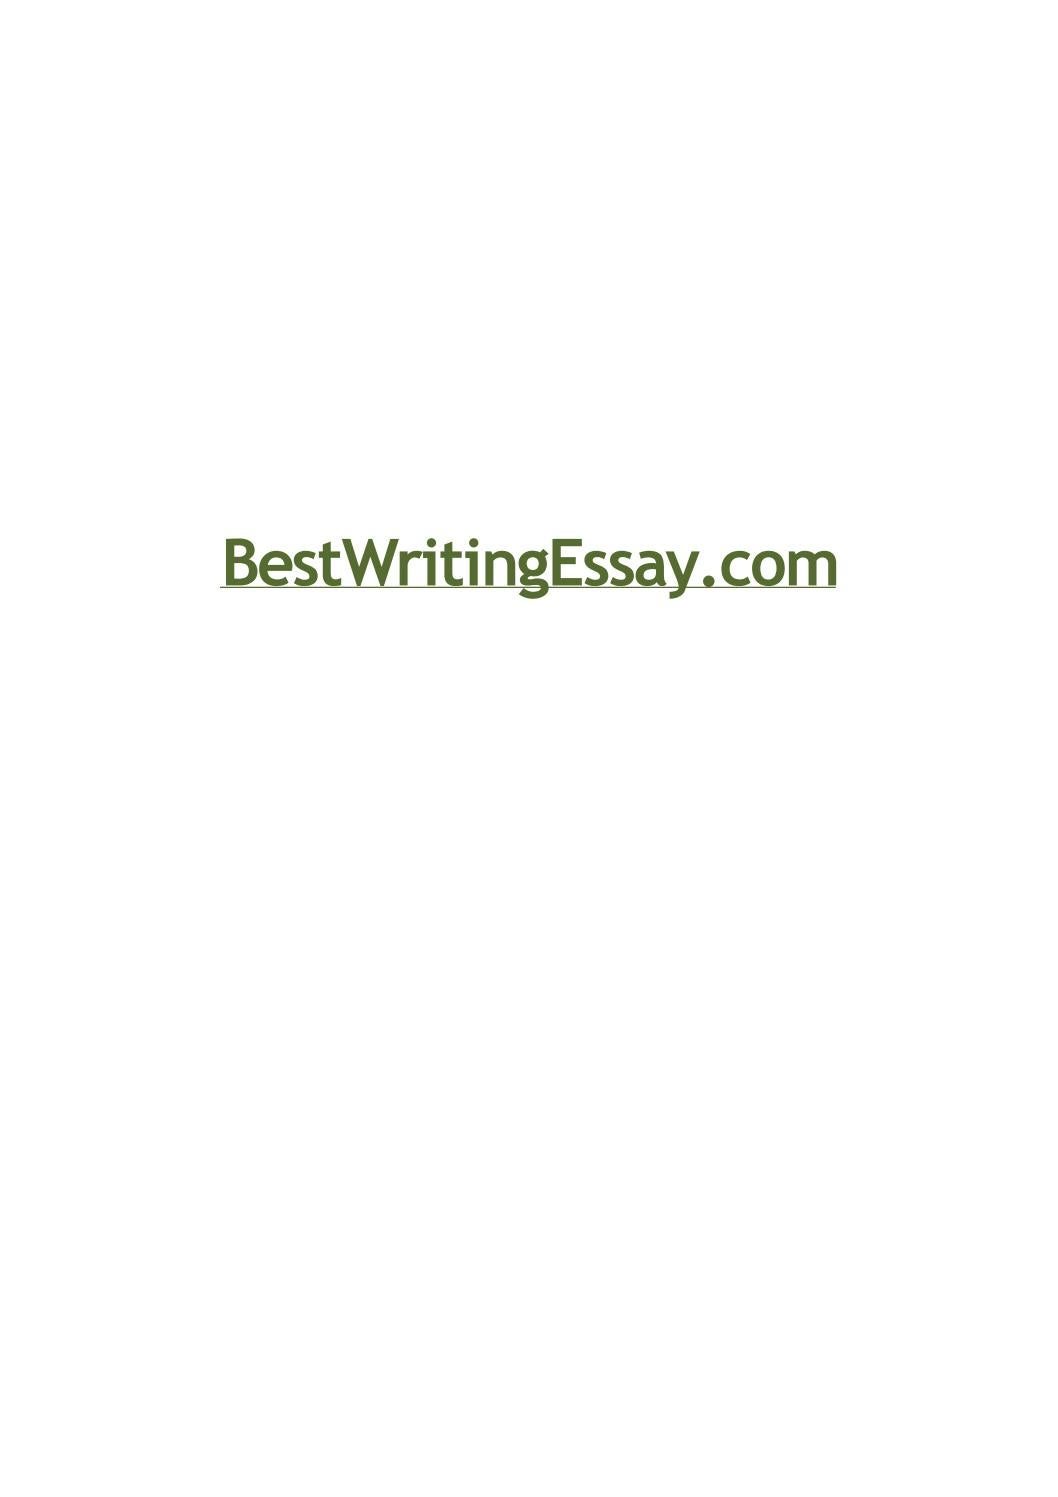 how to answer business law essay questions by